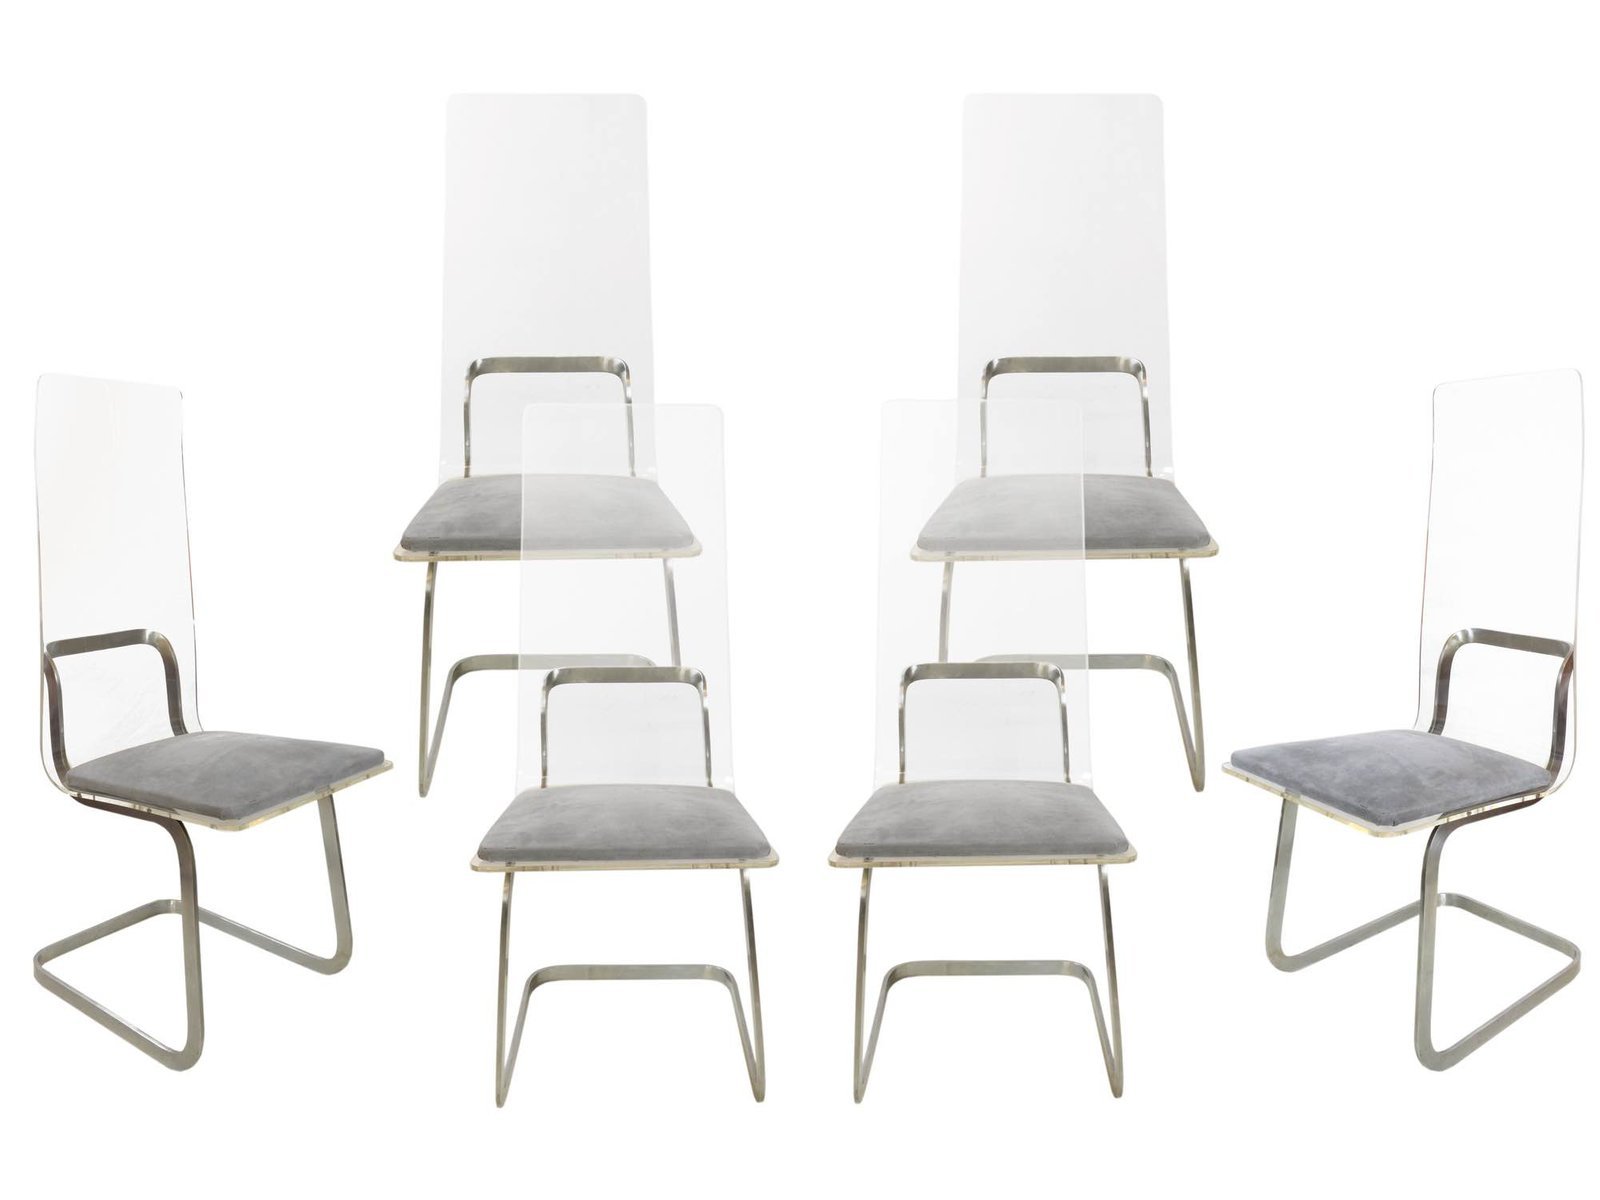 Metal U0026 Plexiglass Chairs By Gary Gutterman, 1970s, Set Of 6 For Sale At  Pamono